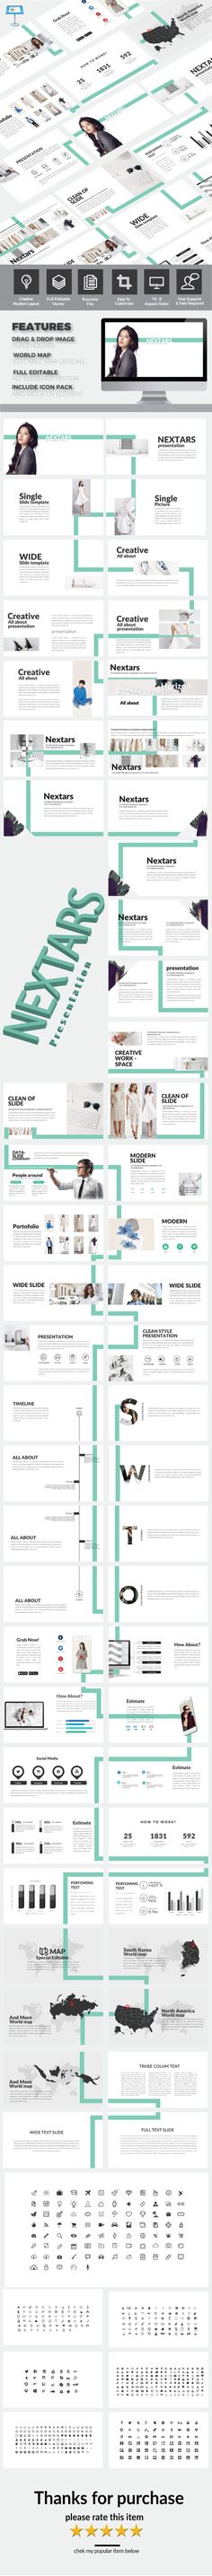 Petang - Creative Presentation Template Presentation templates - annual report analysis sample